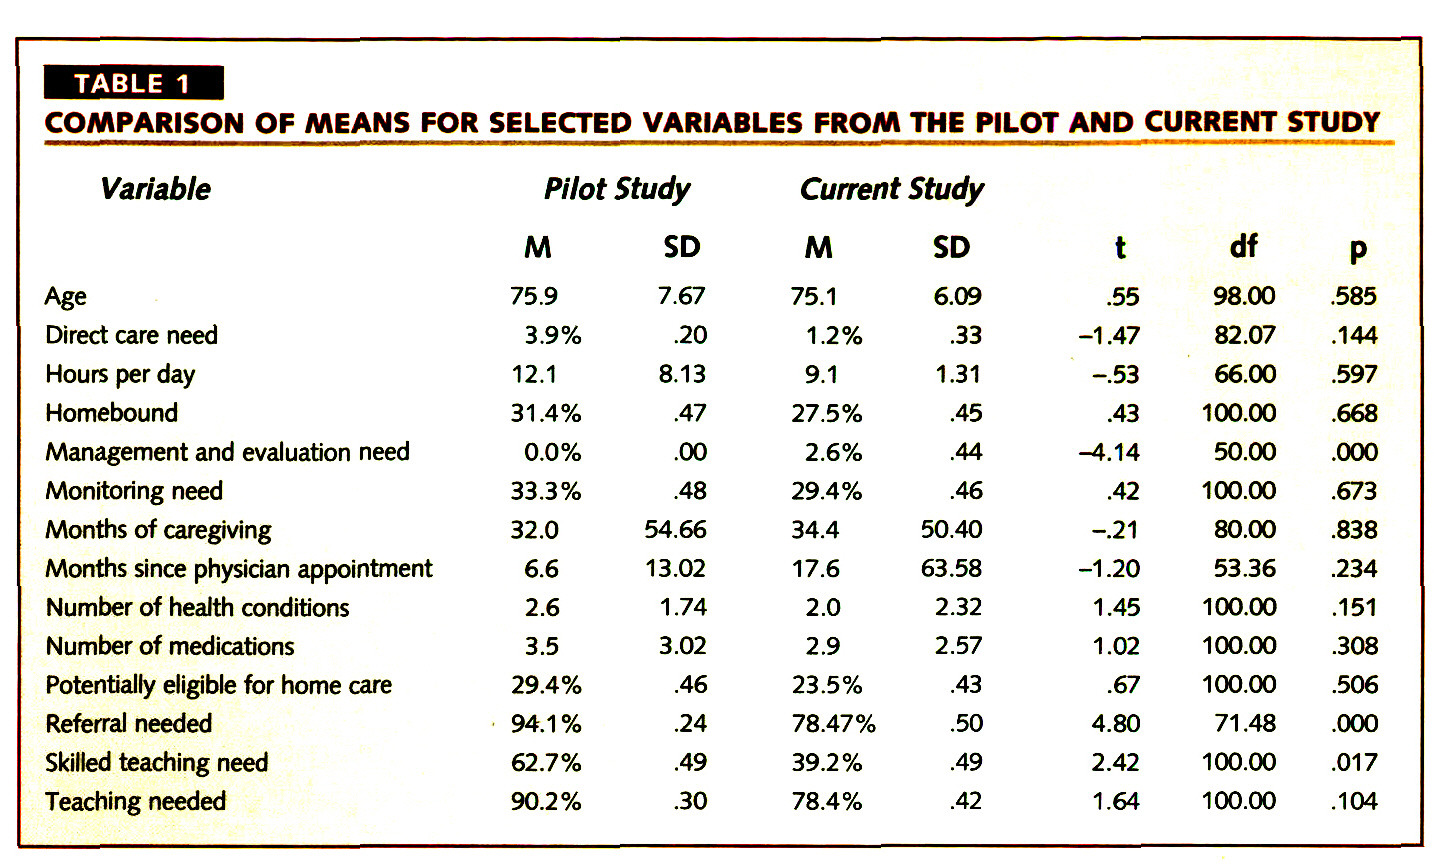 TABLE 1COMPARISON OF MEANS FOR SELECTED VARIABLES FROM THE PILOT AND CURRENT STUDY